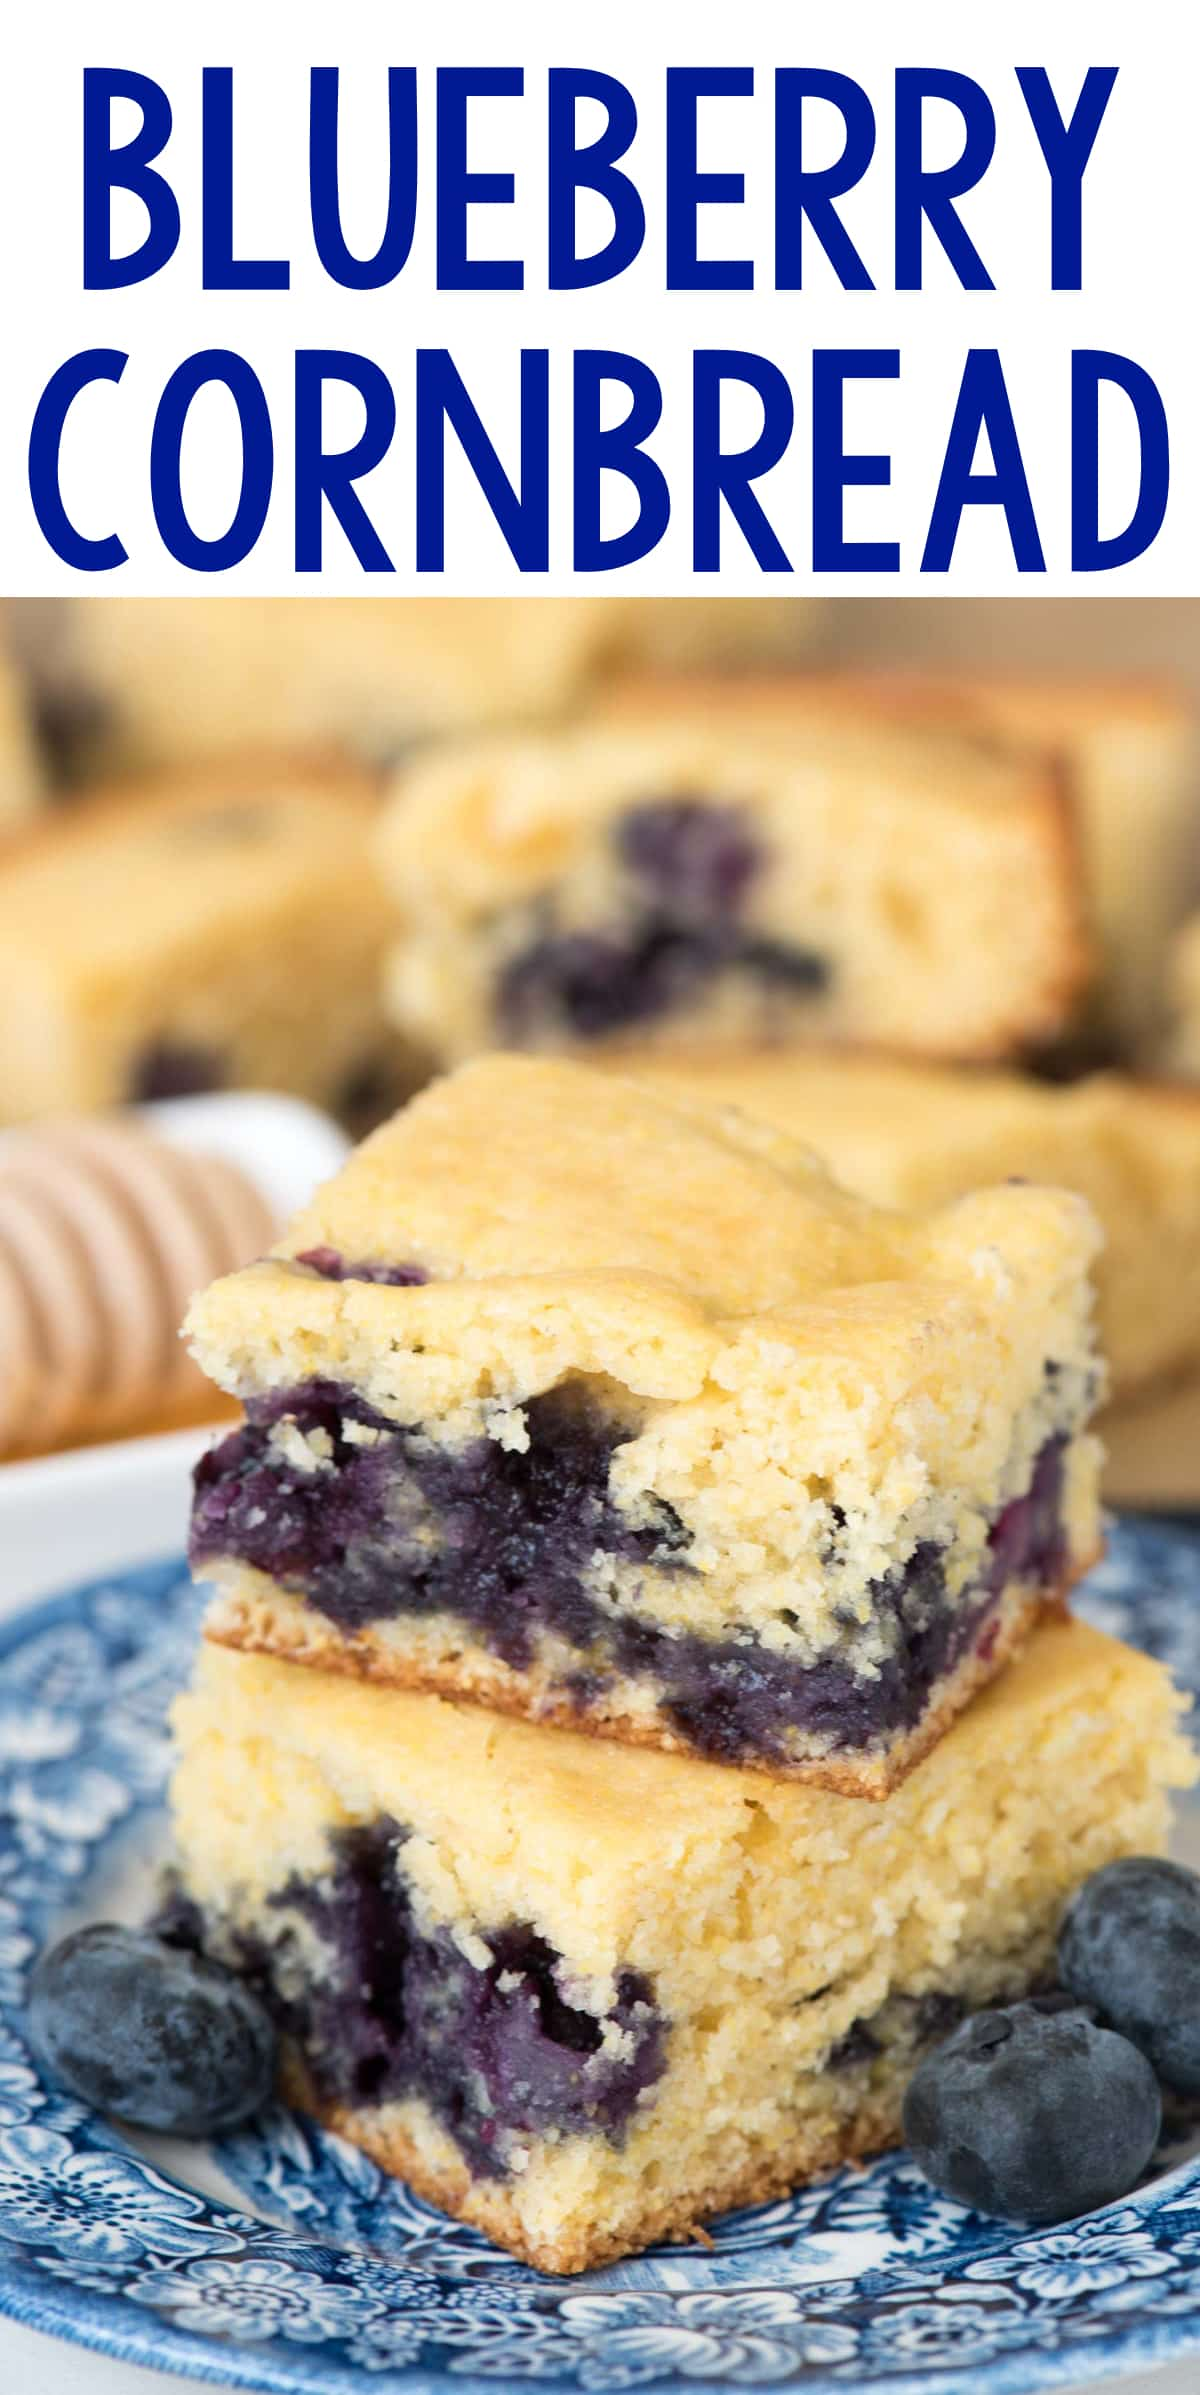 Blueberry Cornbread on a blue plate with blueberries on the side.